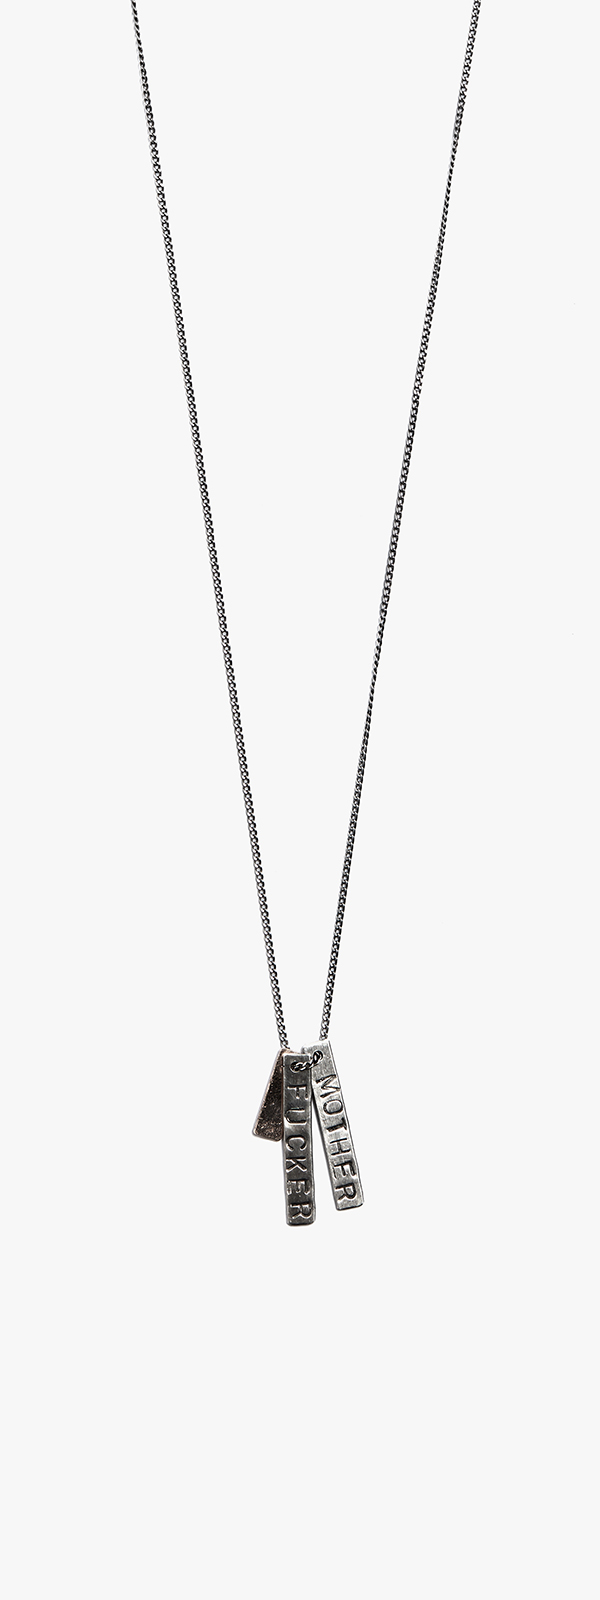 'M.F.' / 18kt Rose Gold ID Tags Necklace